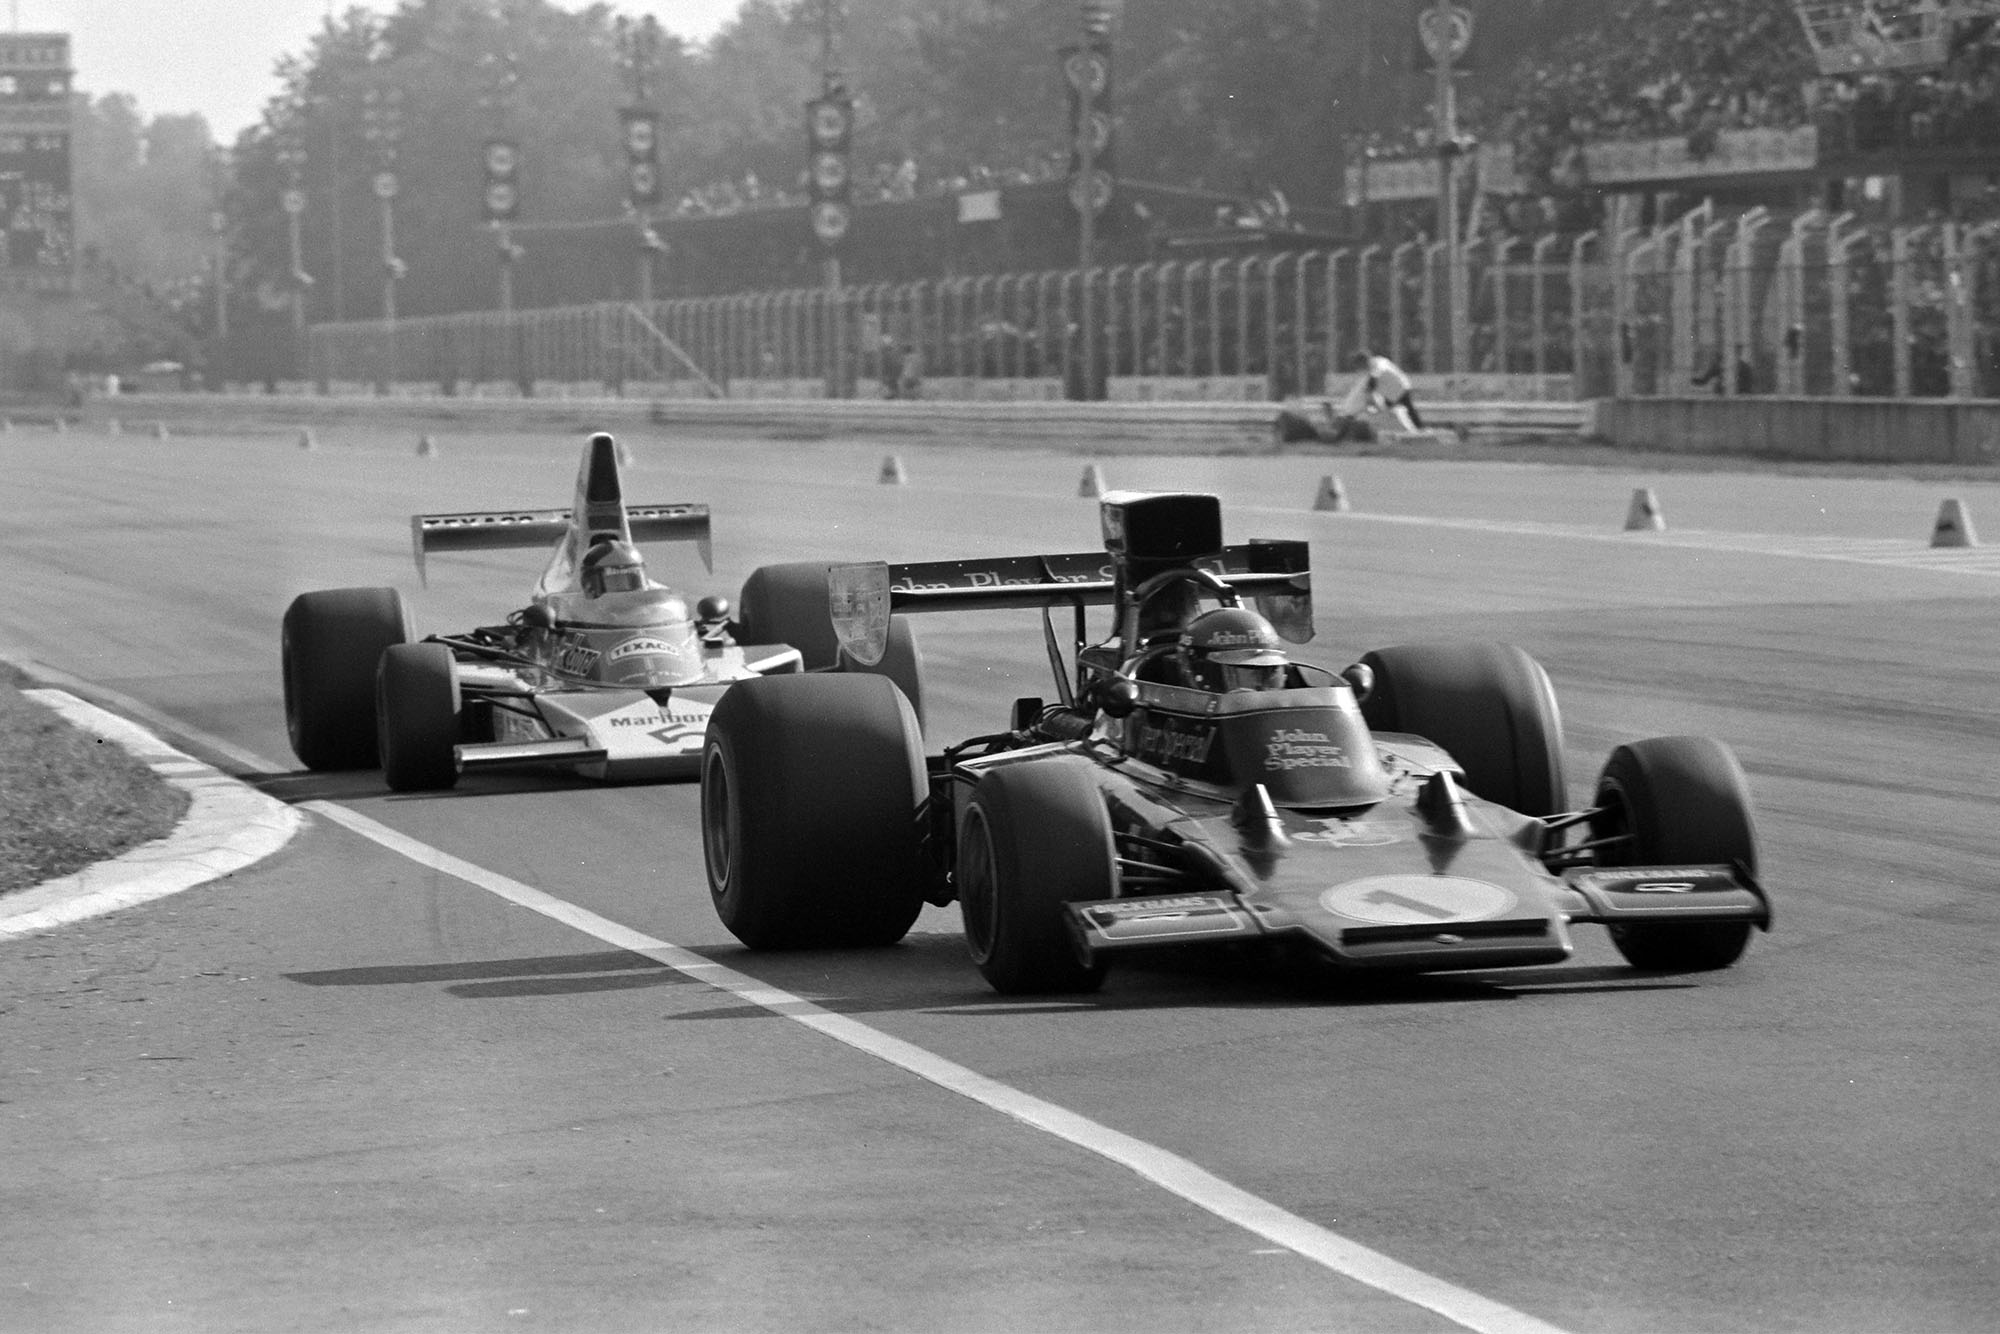 Ronnie Peterson (Lotus) leads Emerson Fittipaldi (McLaren) at the 1974 Italian Grand Prix, Monza.)